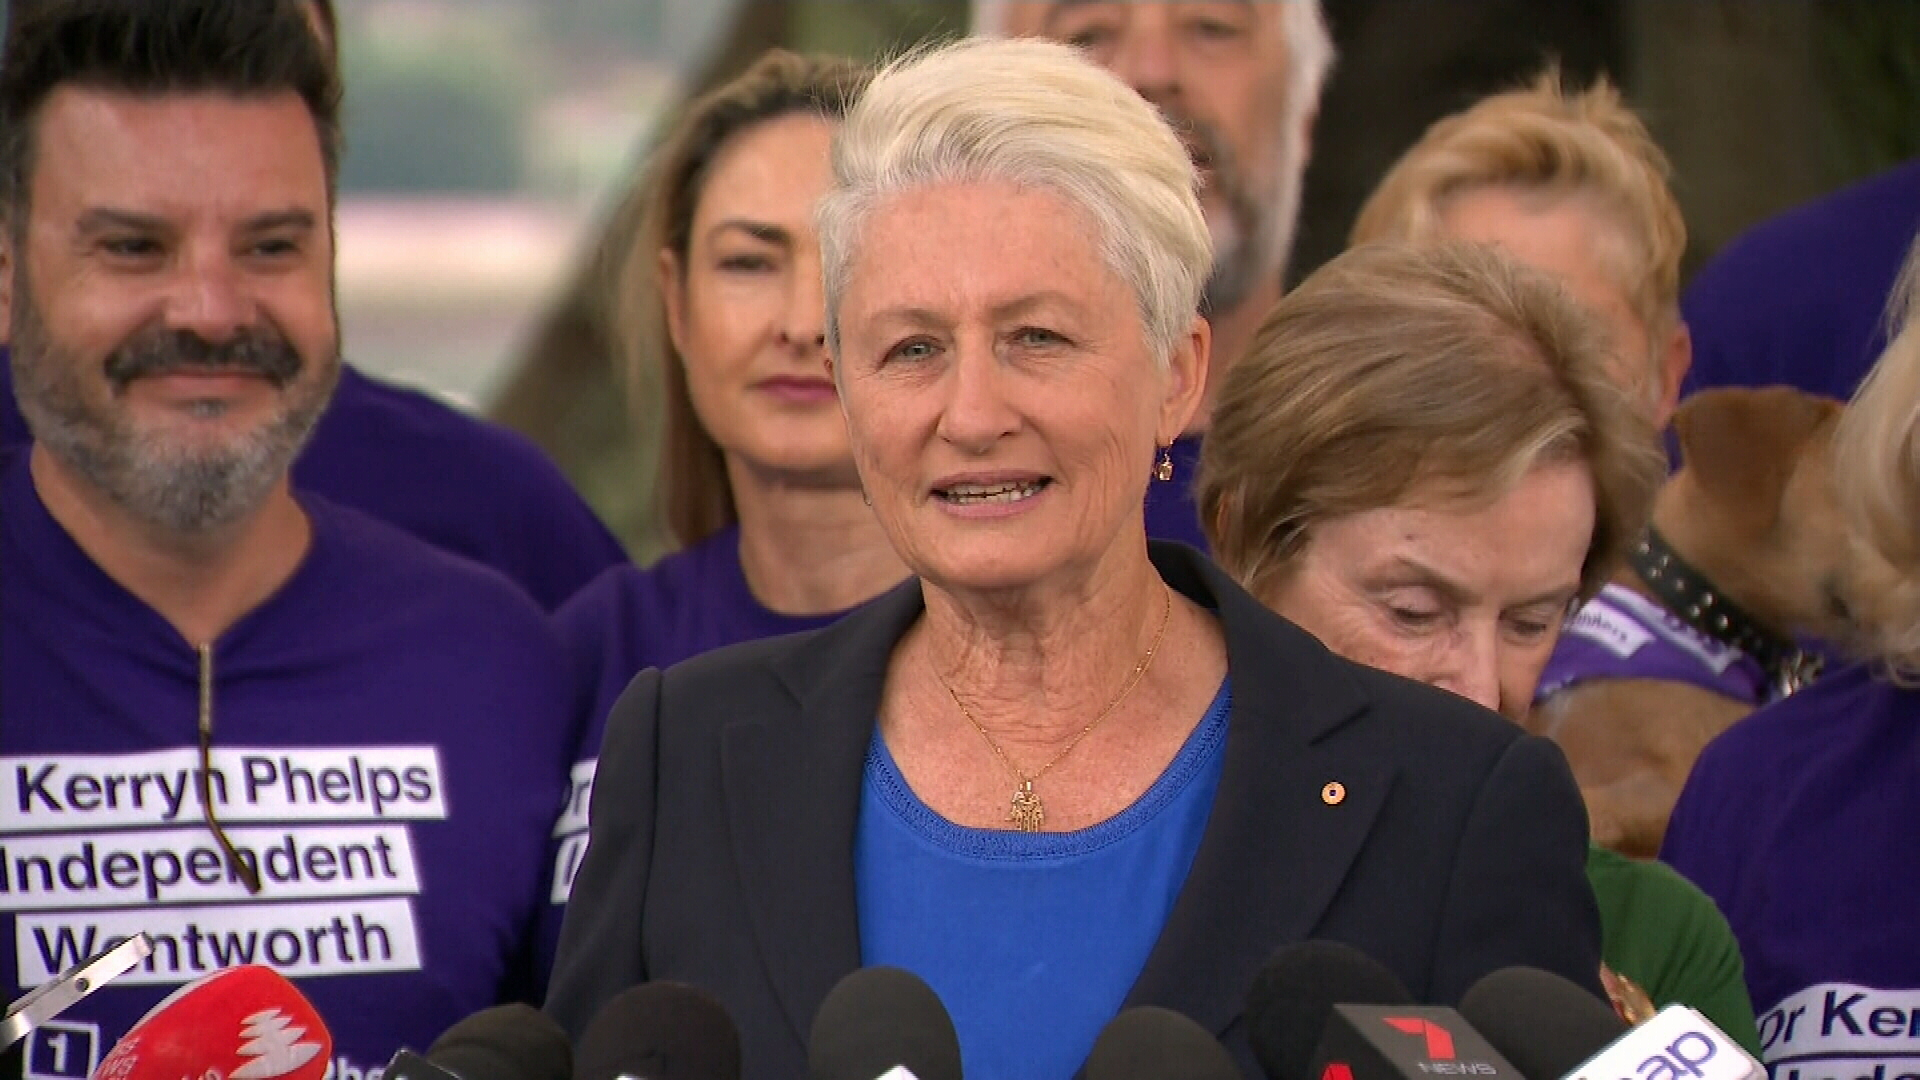 Kerryn Phelps concedes defeat in the seat of Wentworth